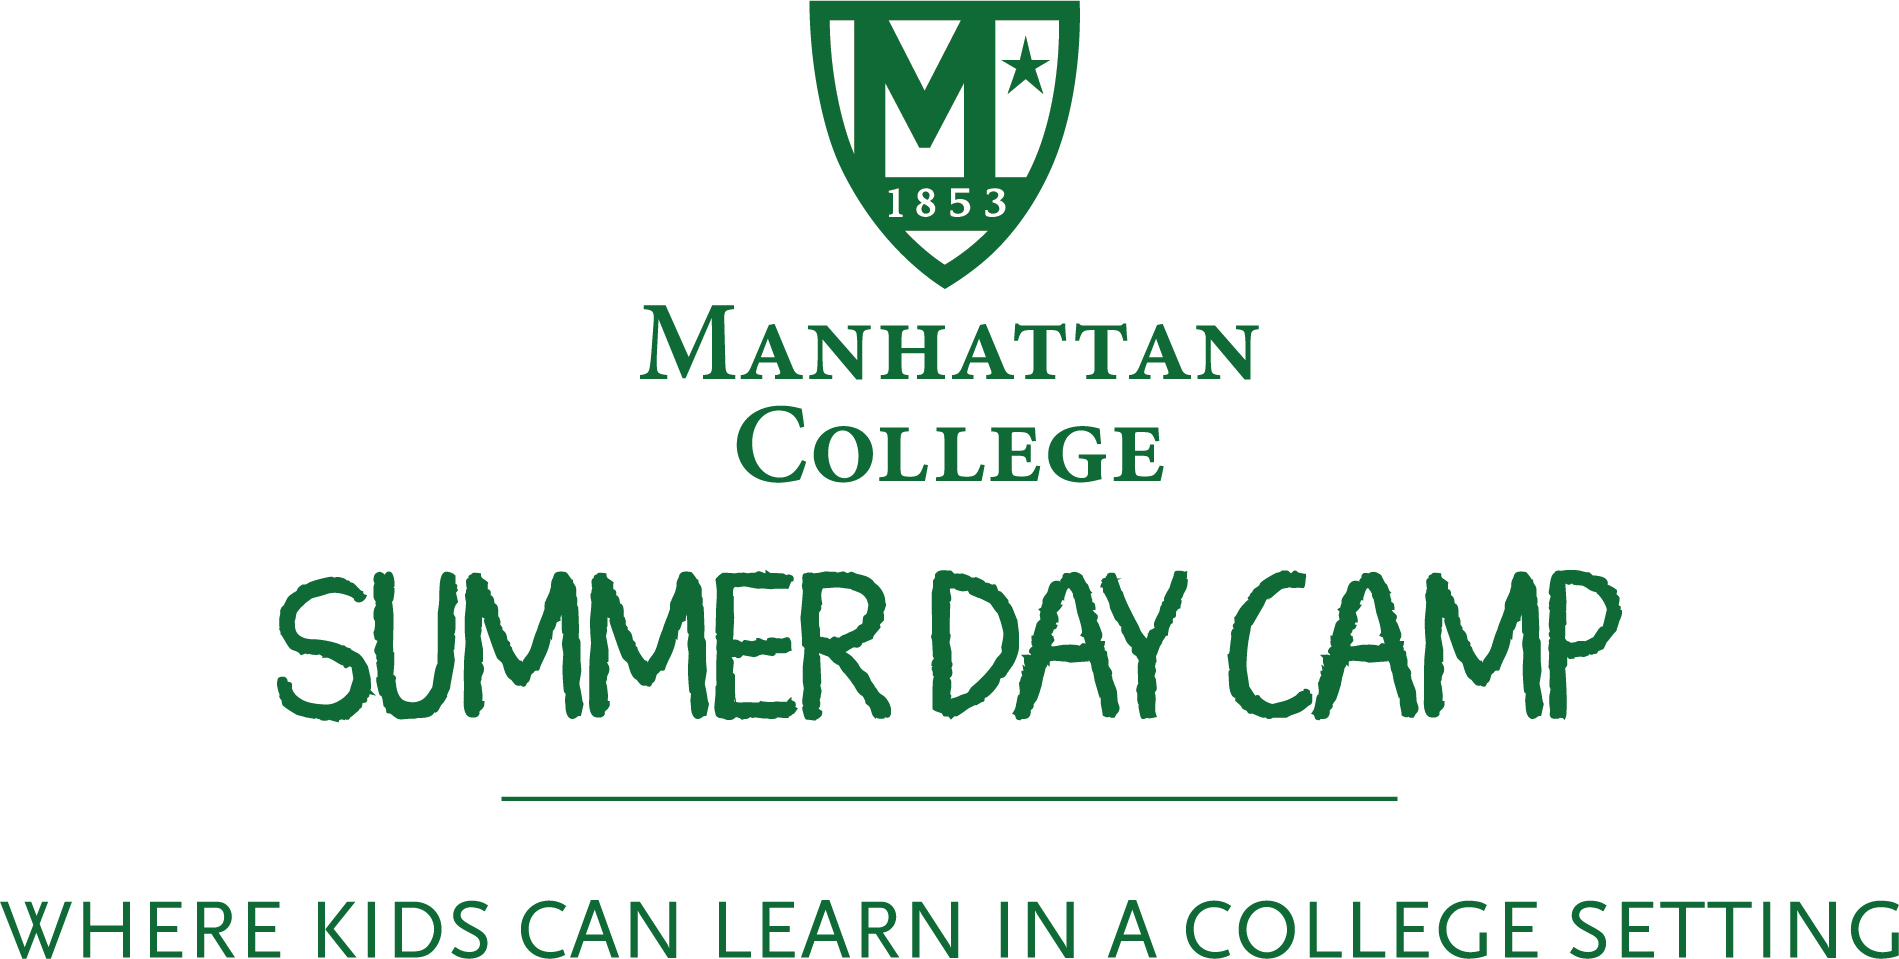 Manhattan College summer day camp logo